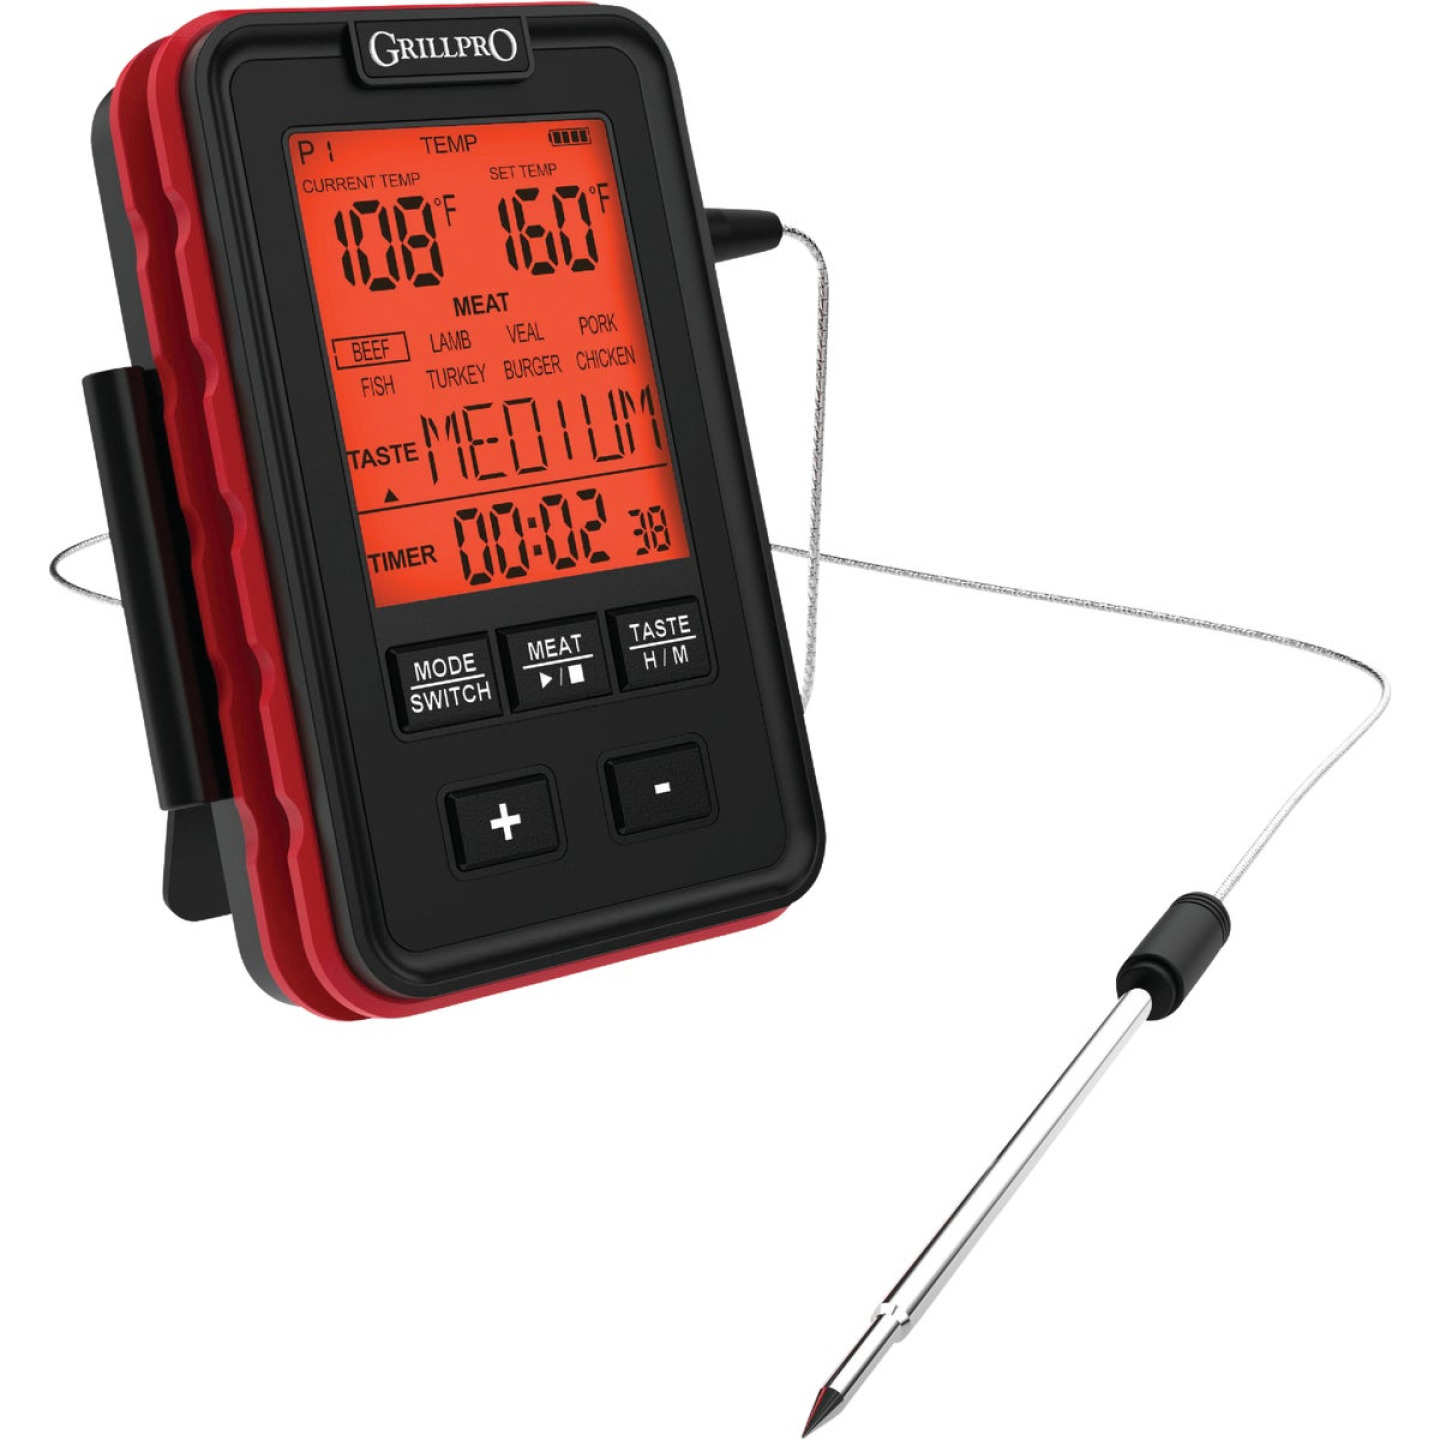 GrillPro Leave-In Probe Side Table Thermometer Image 4